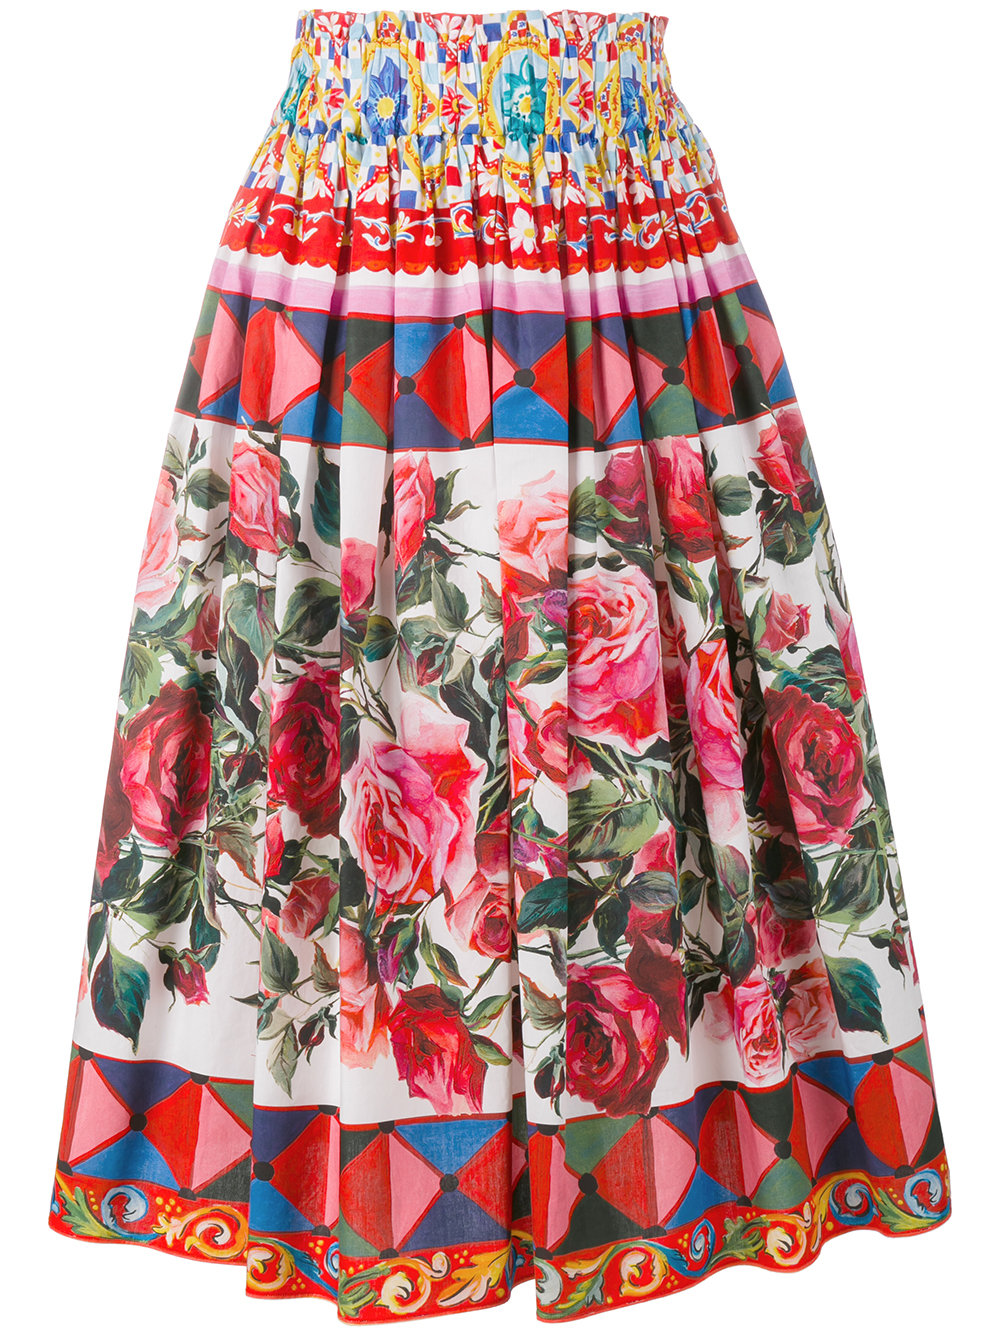 6f5f76f741 Dolce & Gabbana Mambo Print Pleated Skirt - Farfetch